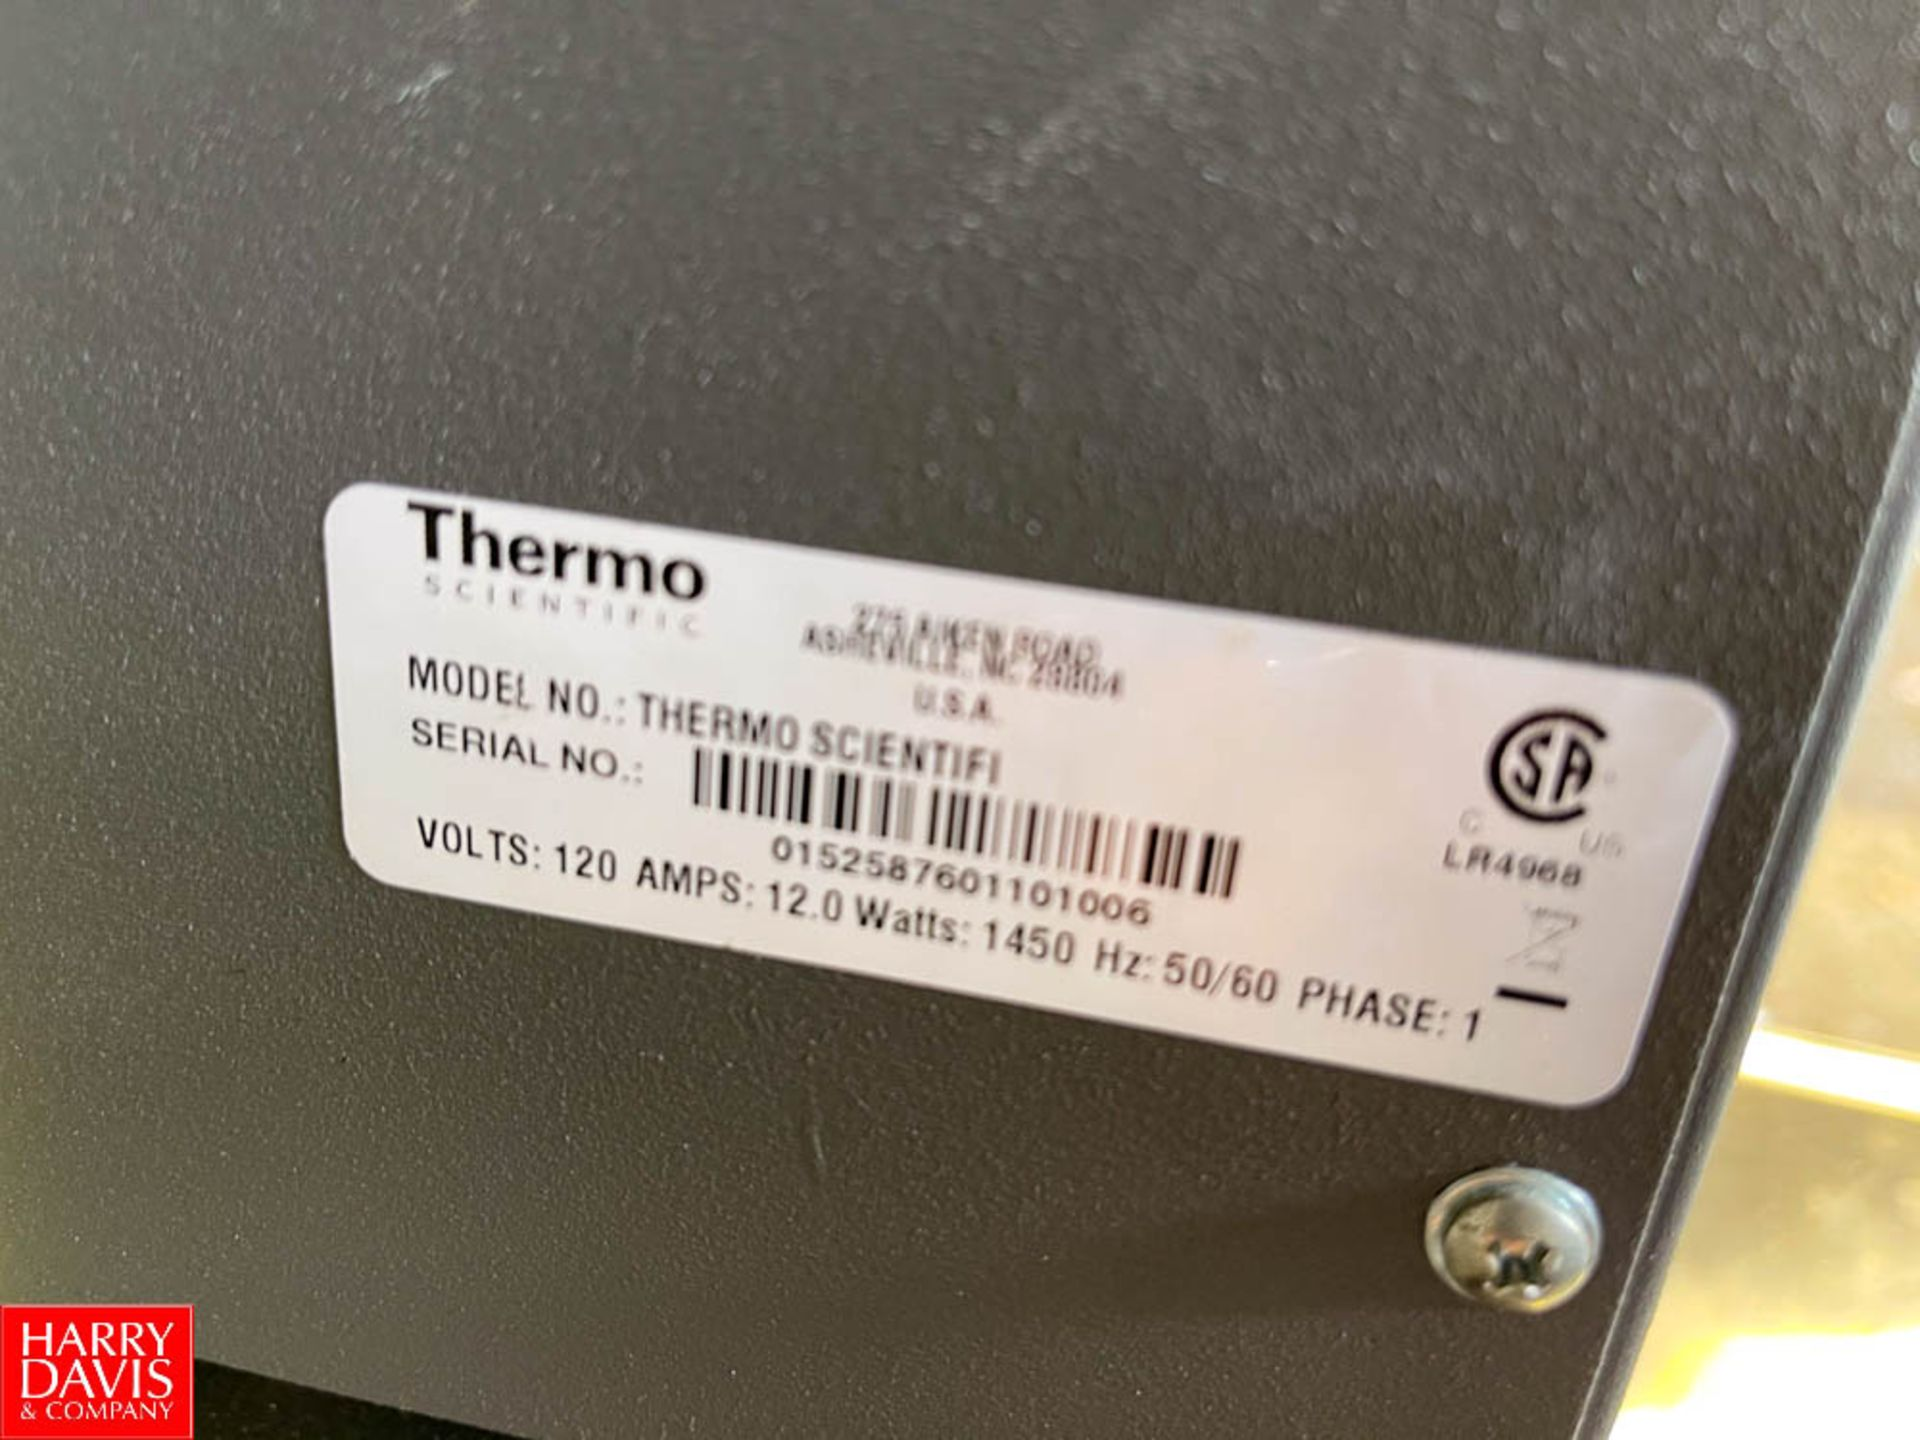 Thermo Scientific Industrial Benchtop Muffle Furnace - Image 2 of 2